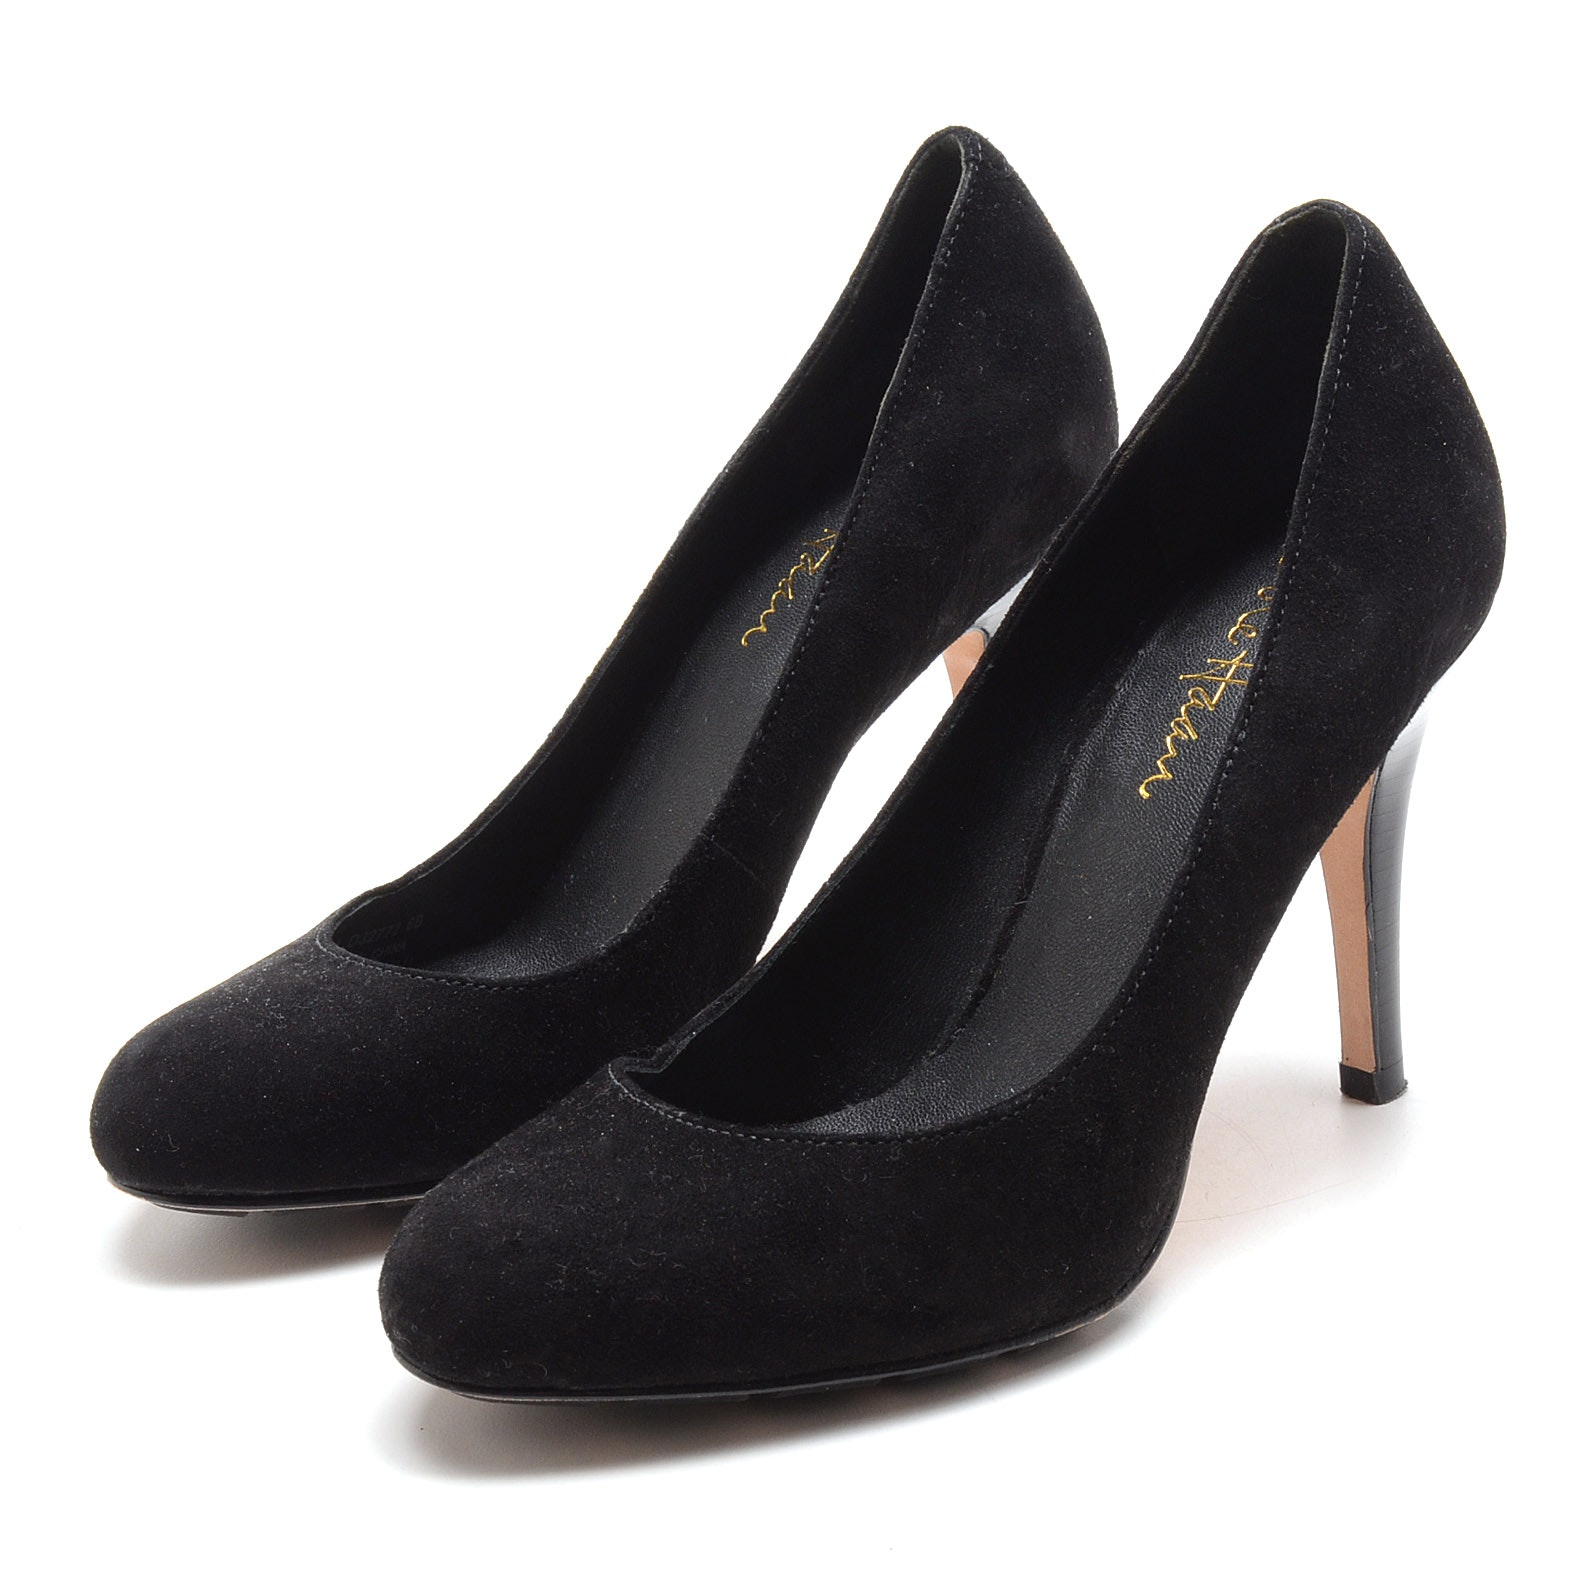 Cole Haan Black Suede Leather Dress Pumps